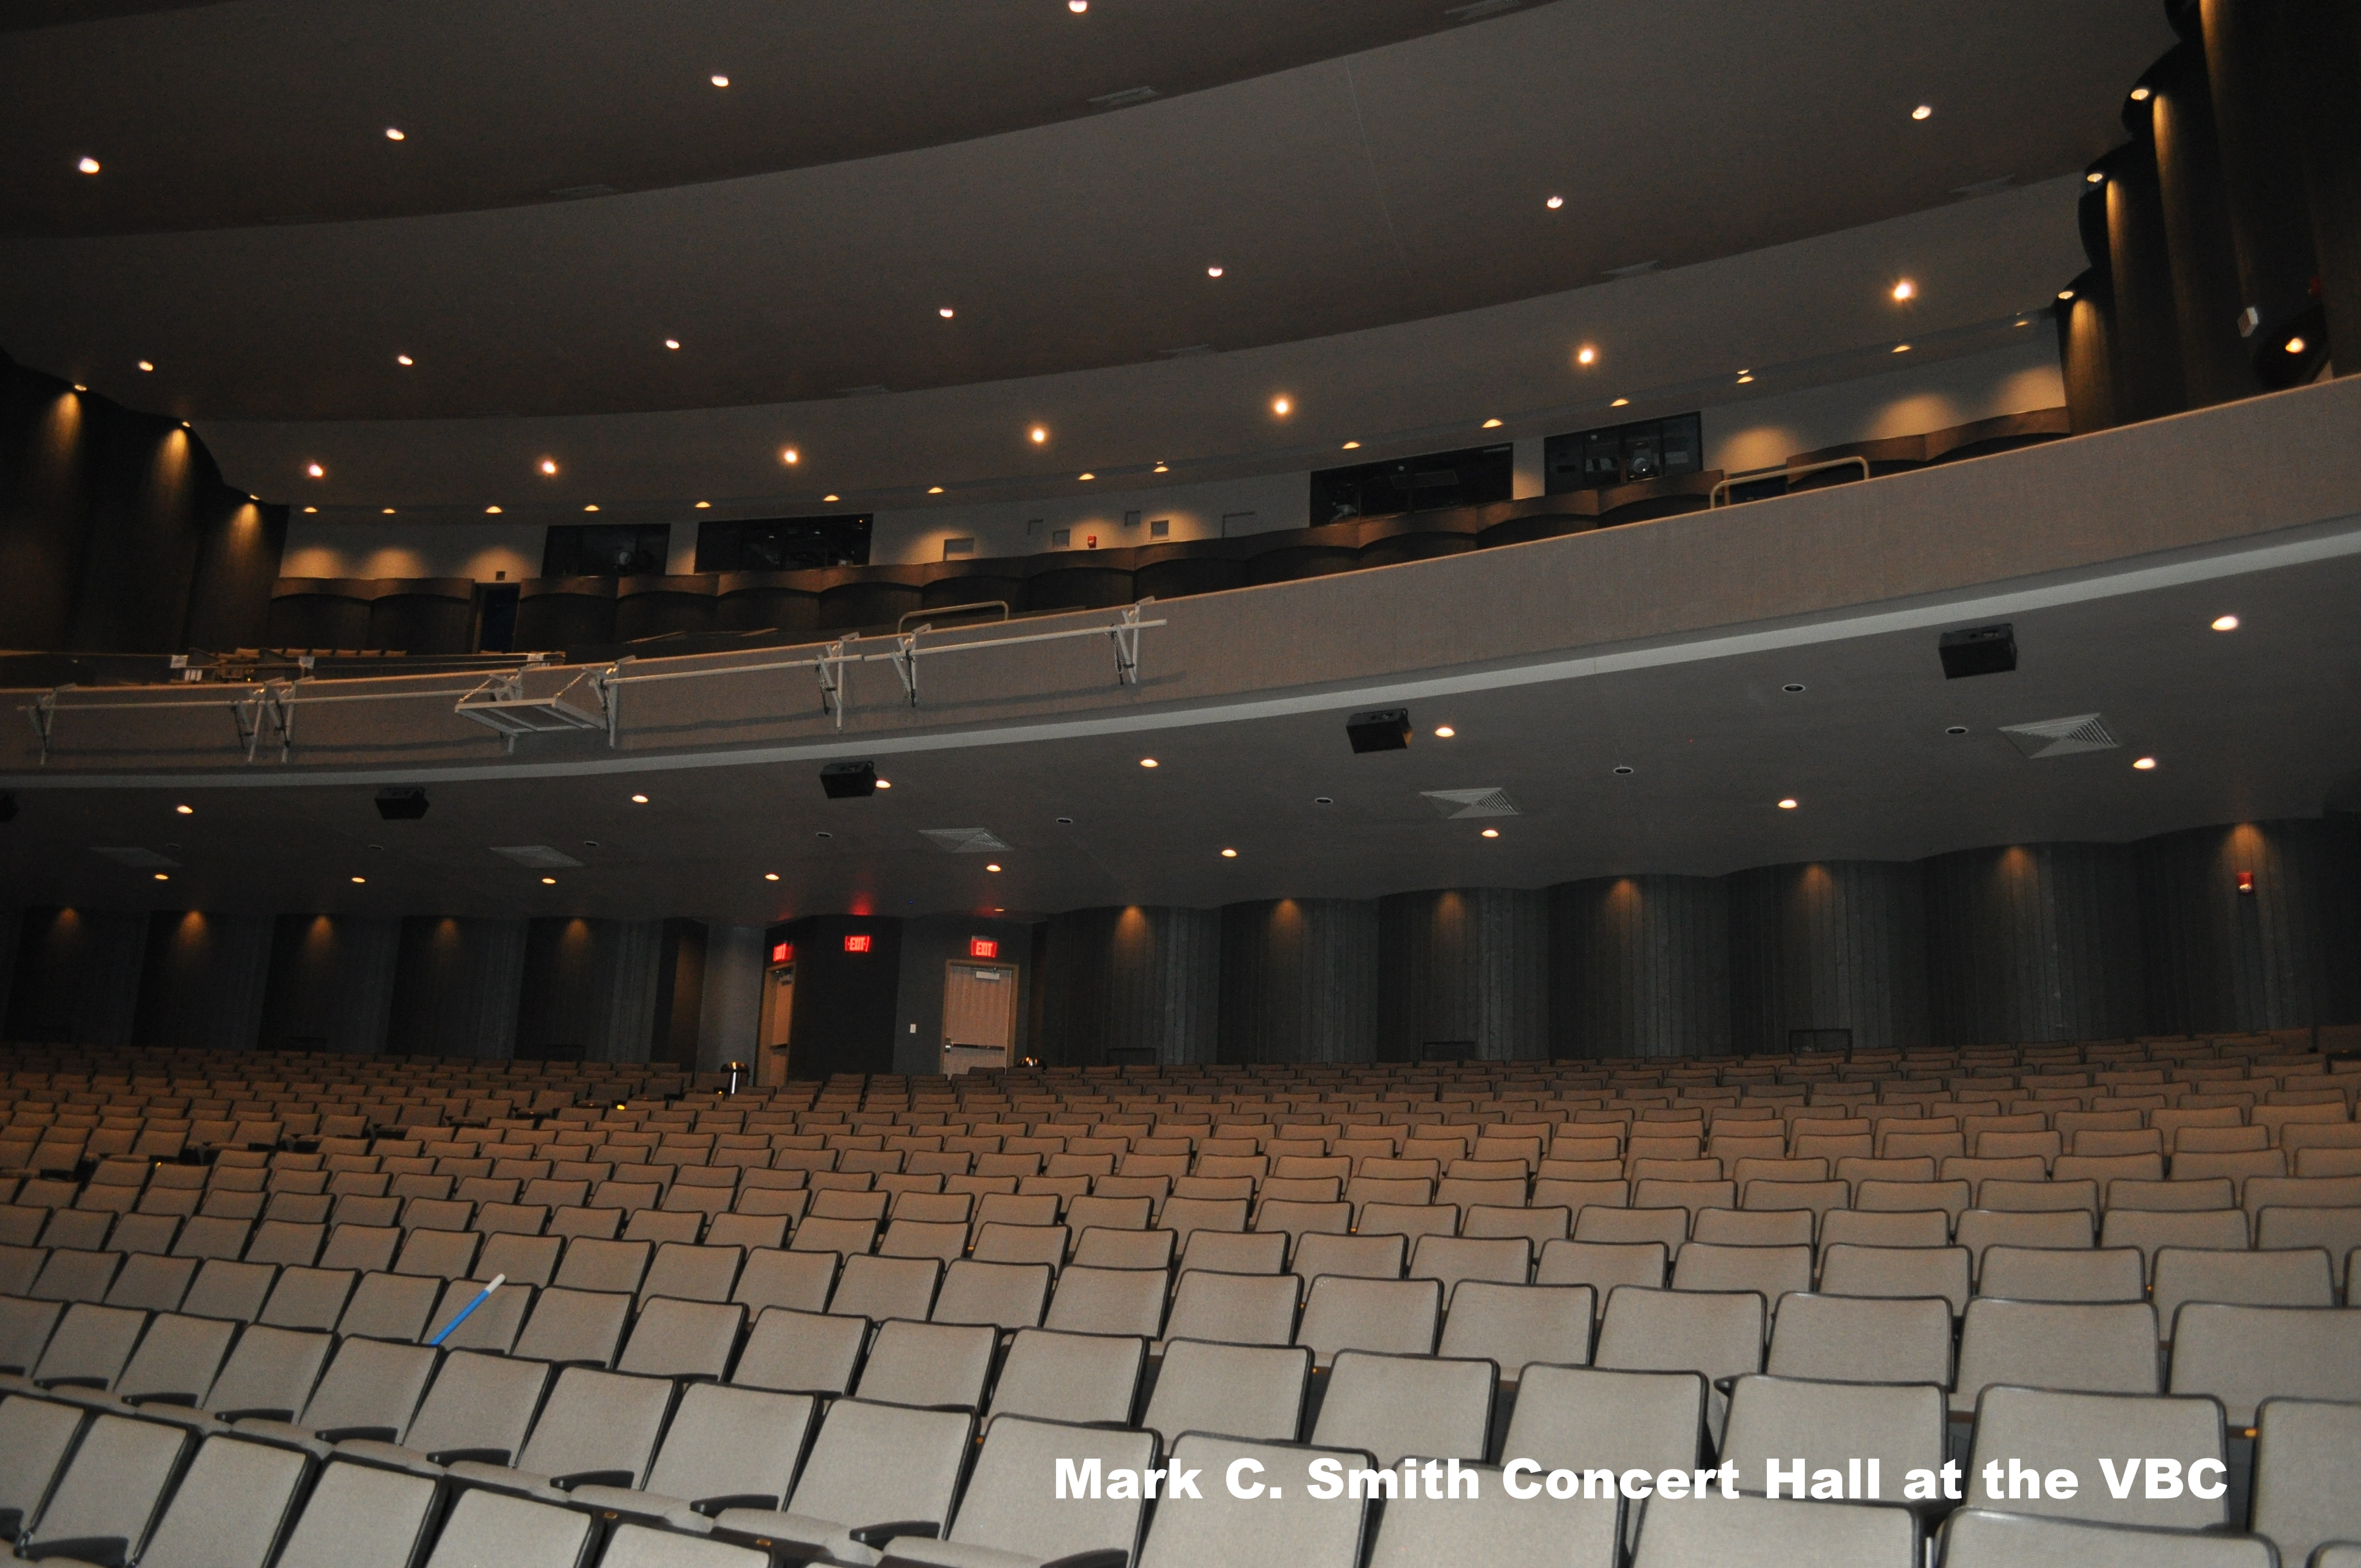 Mark C. Smith Concert Hall at the VBC